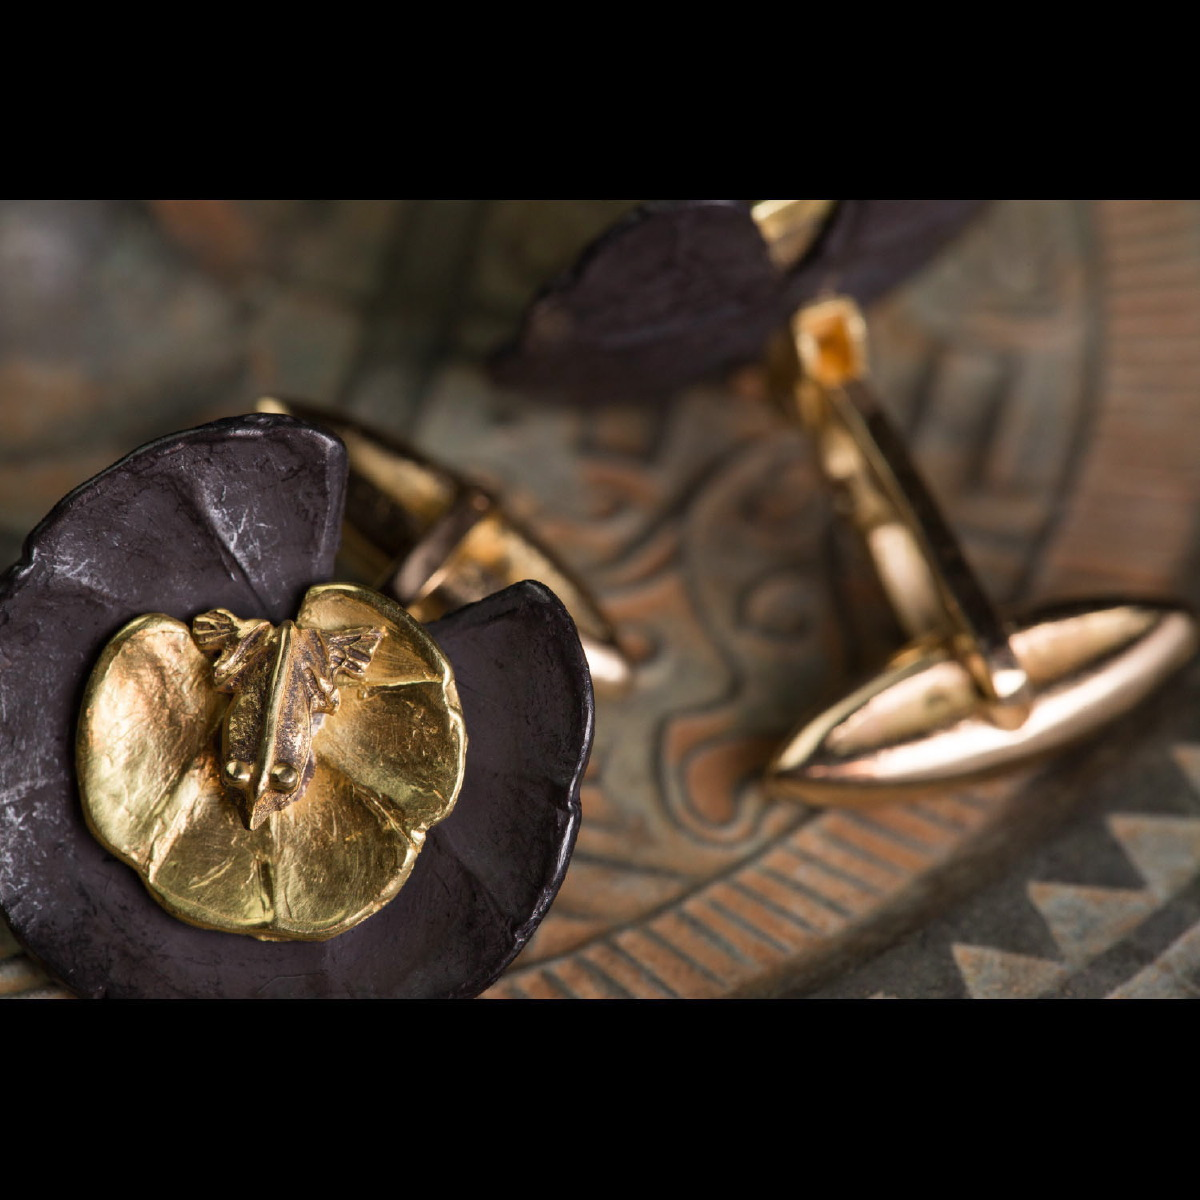 Photo of egyptian-jewellery-ancient-gold-frogs-cufflinks-galerie-golconda-musuem-quality-jewellery-for-collectors